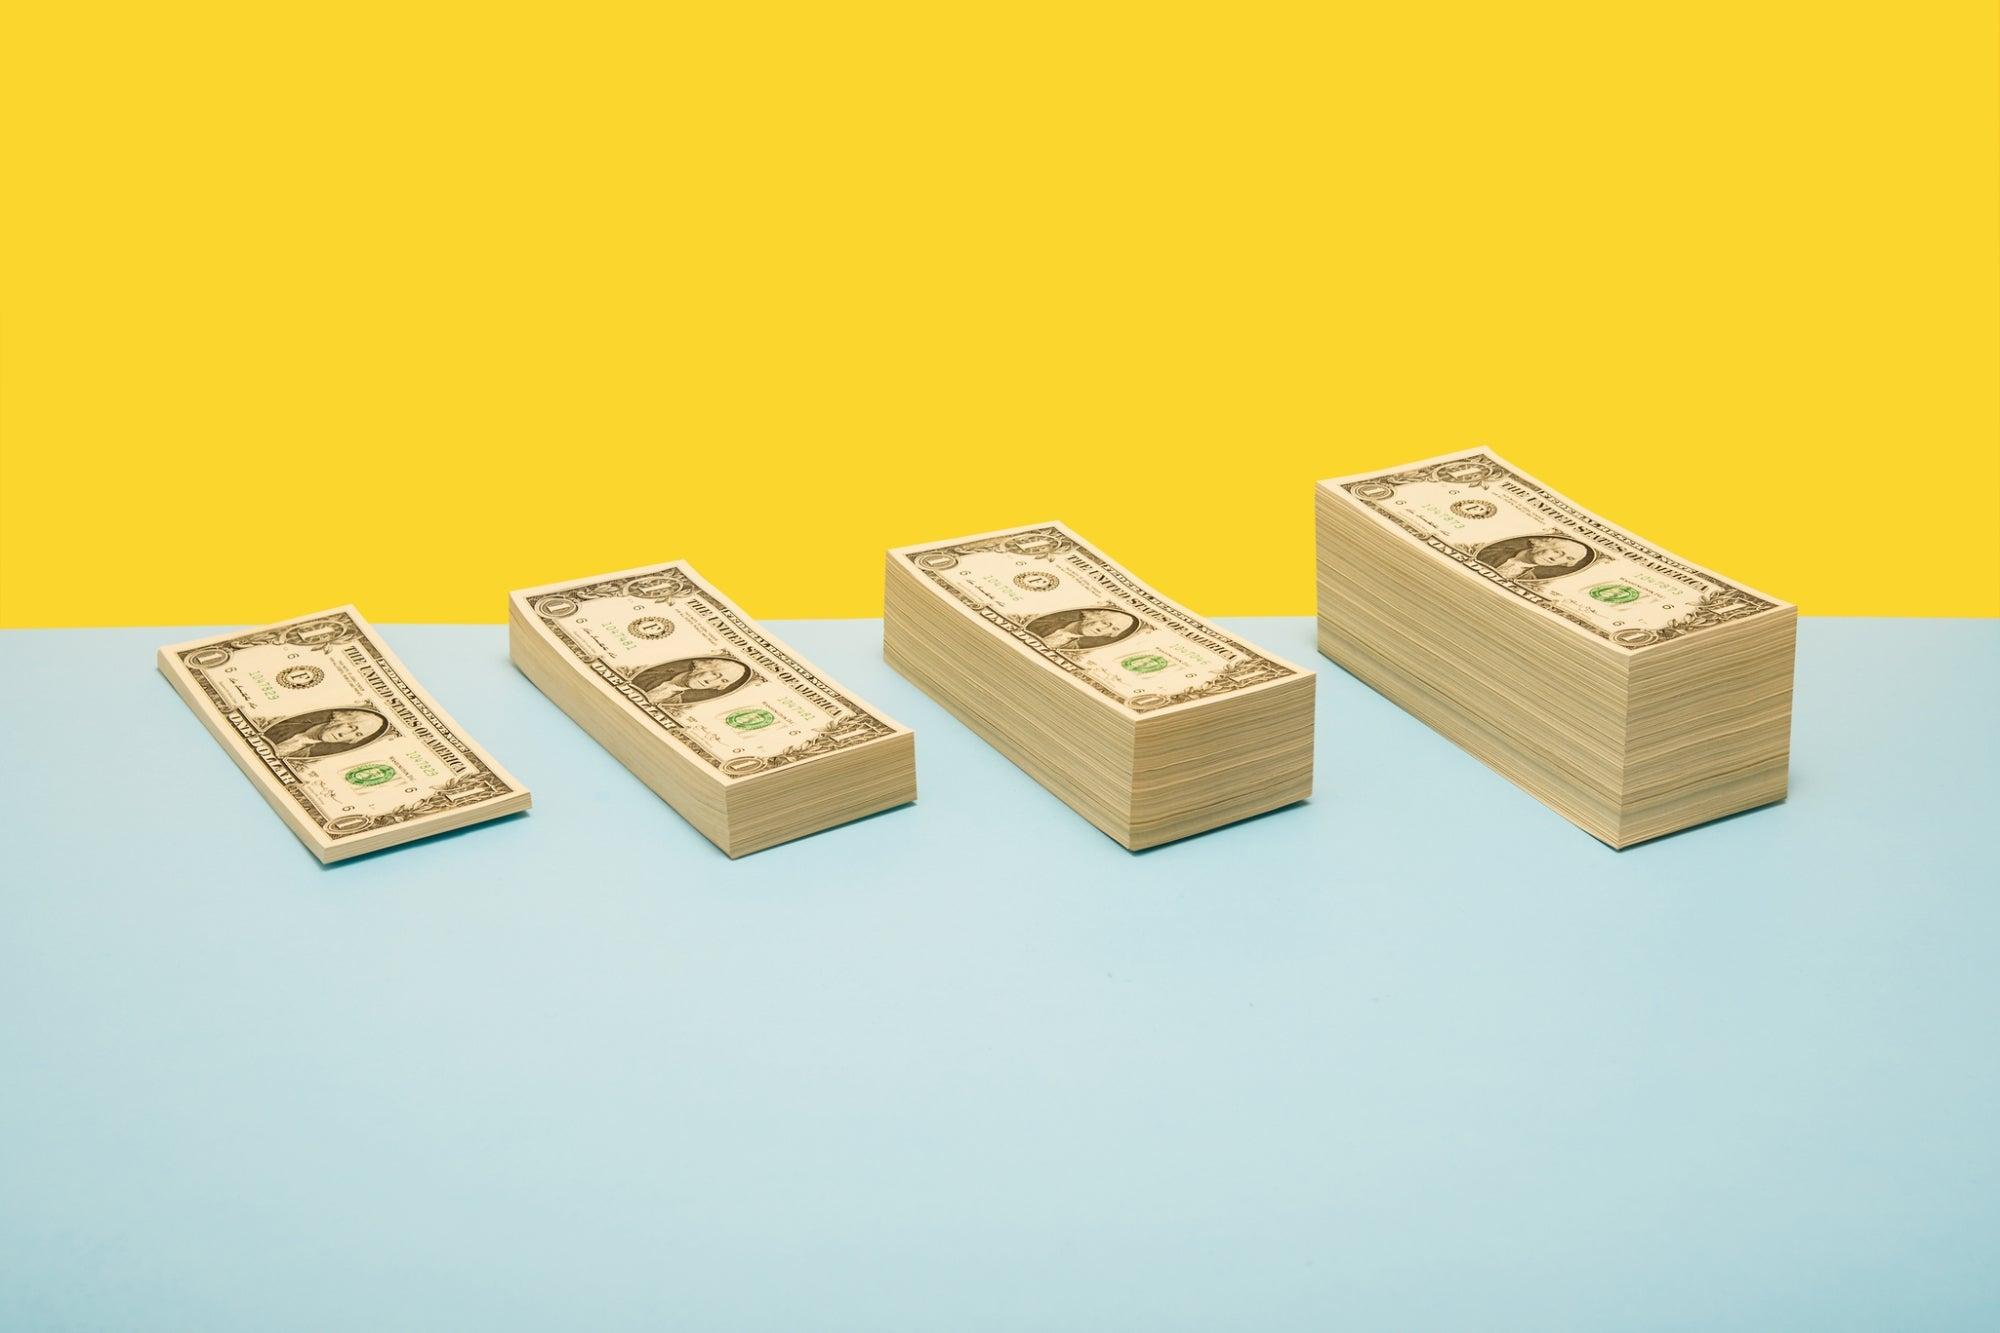 4 Ways an Entrepreneur Should Diversify Their Income